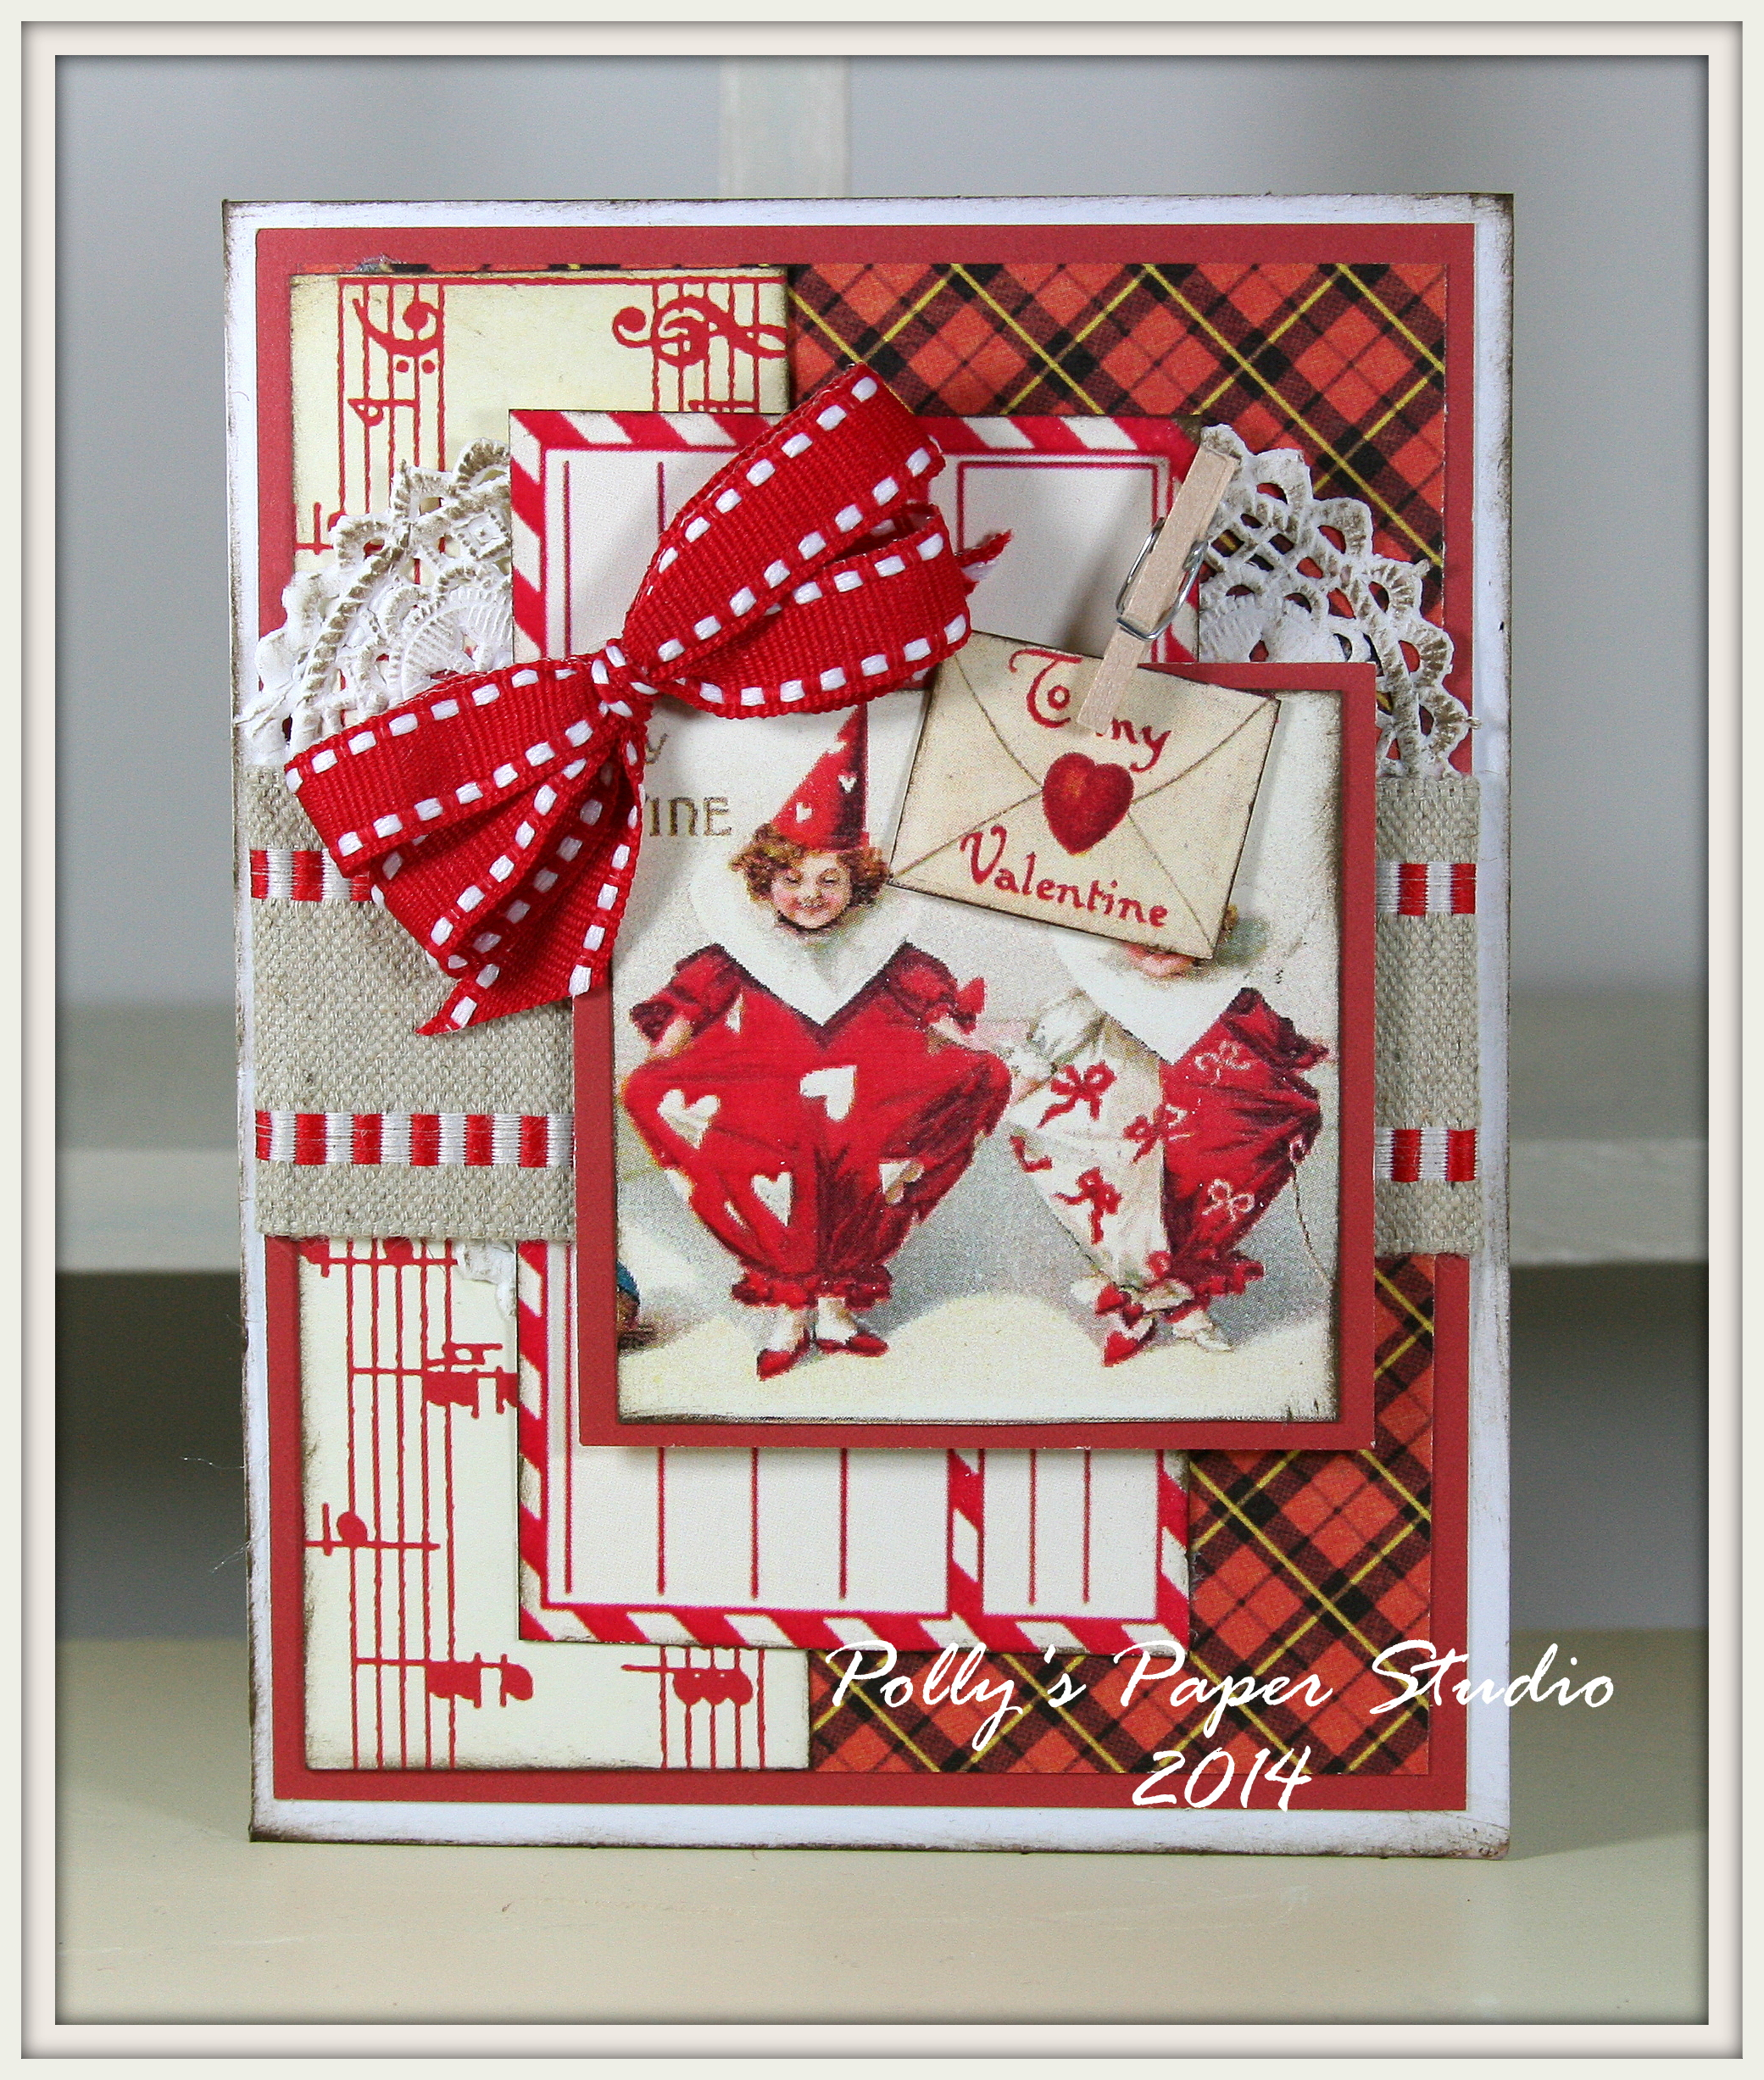 Vintage Valentines Cards and Kits | Polly's Paper Studio